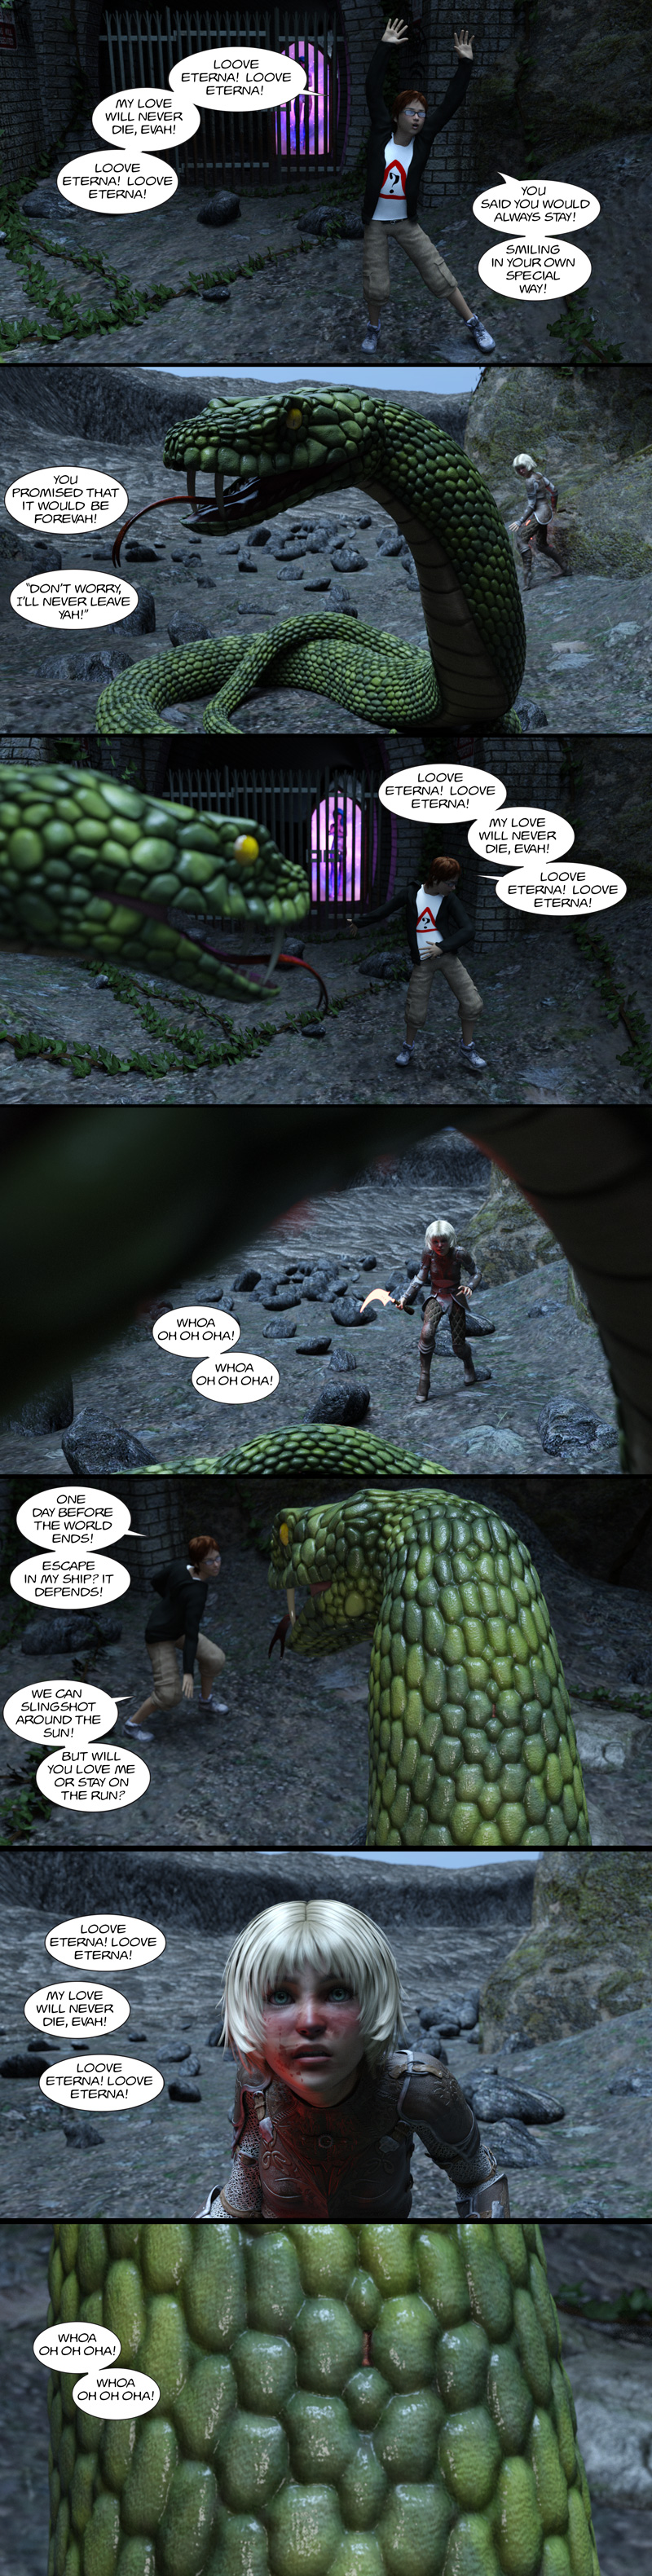 Chapter 13, page 4